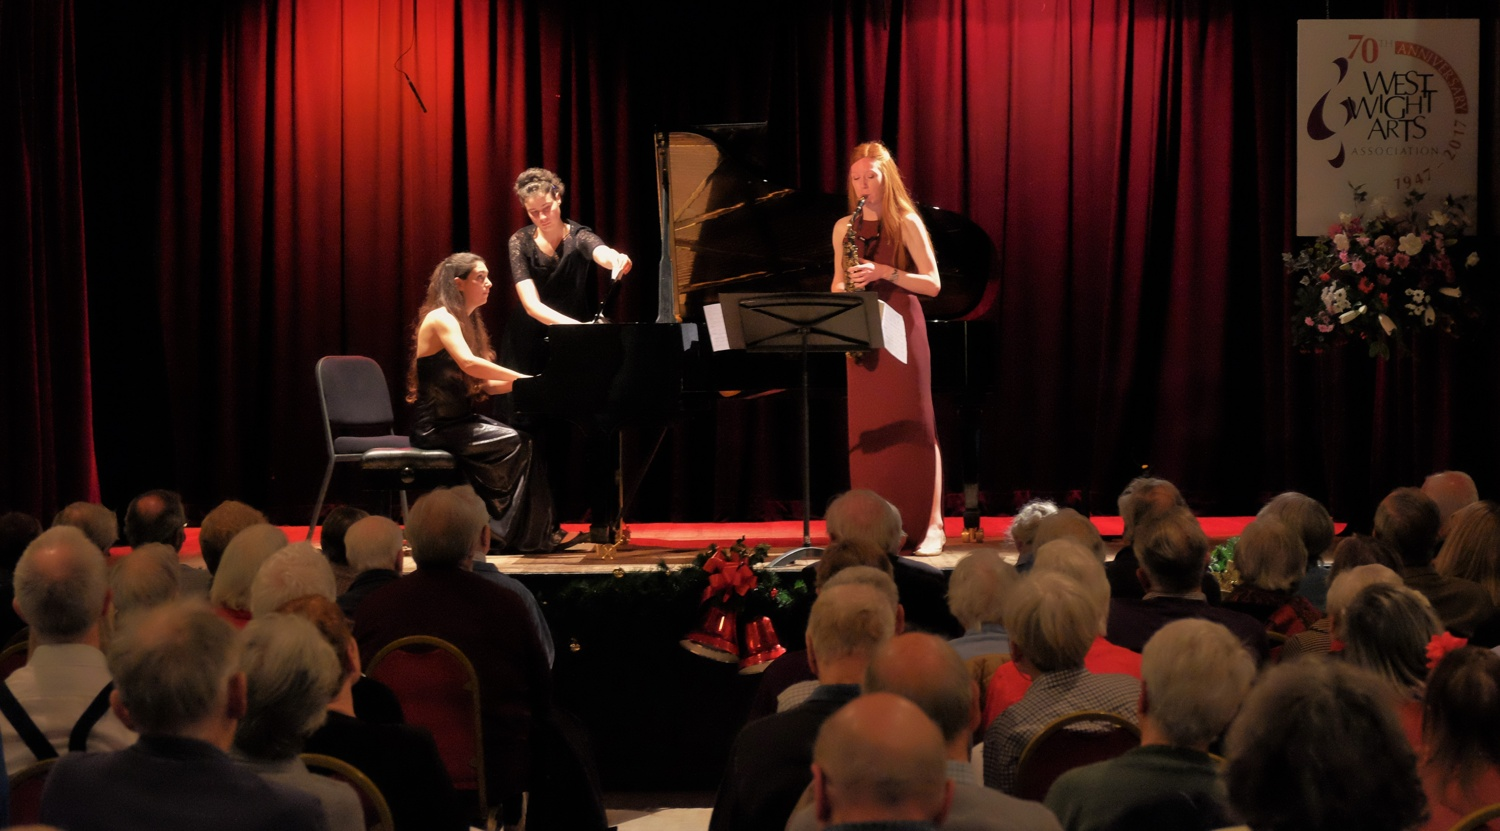 Amy Green and Christina Zerafa perform at the West Wight Arts Association